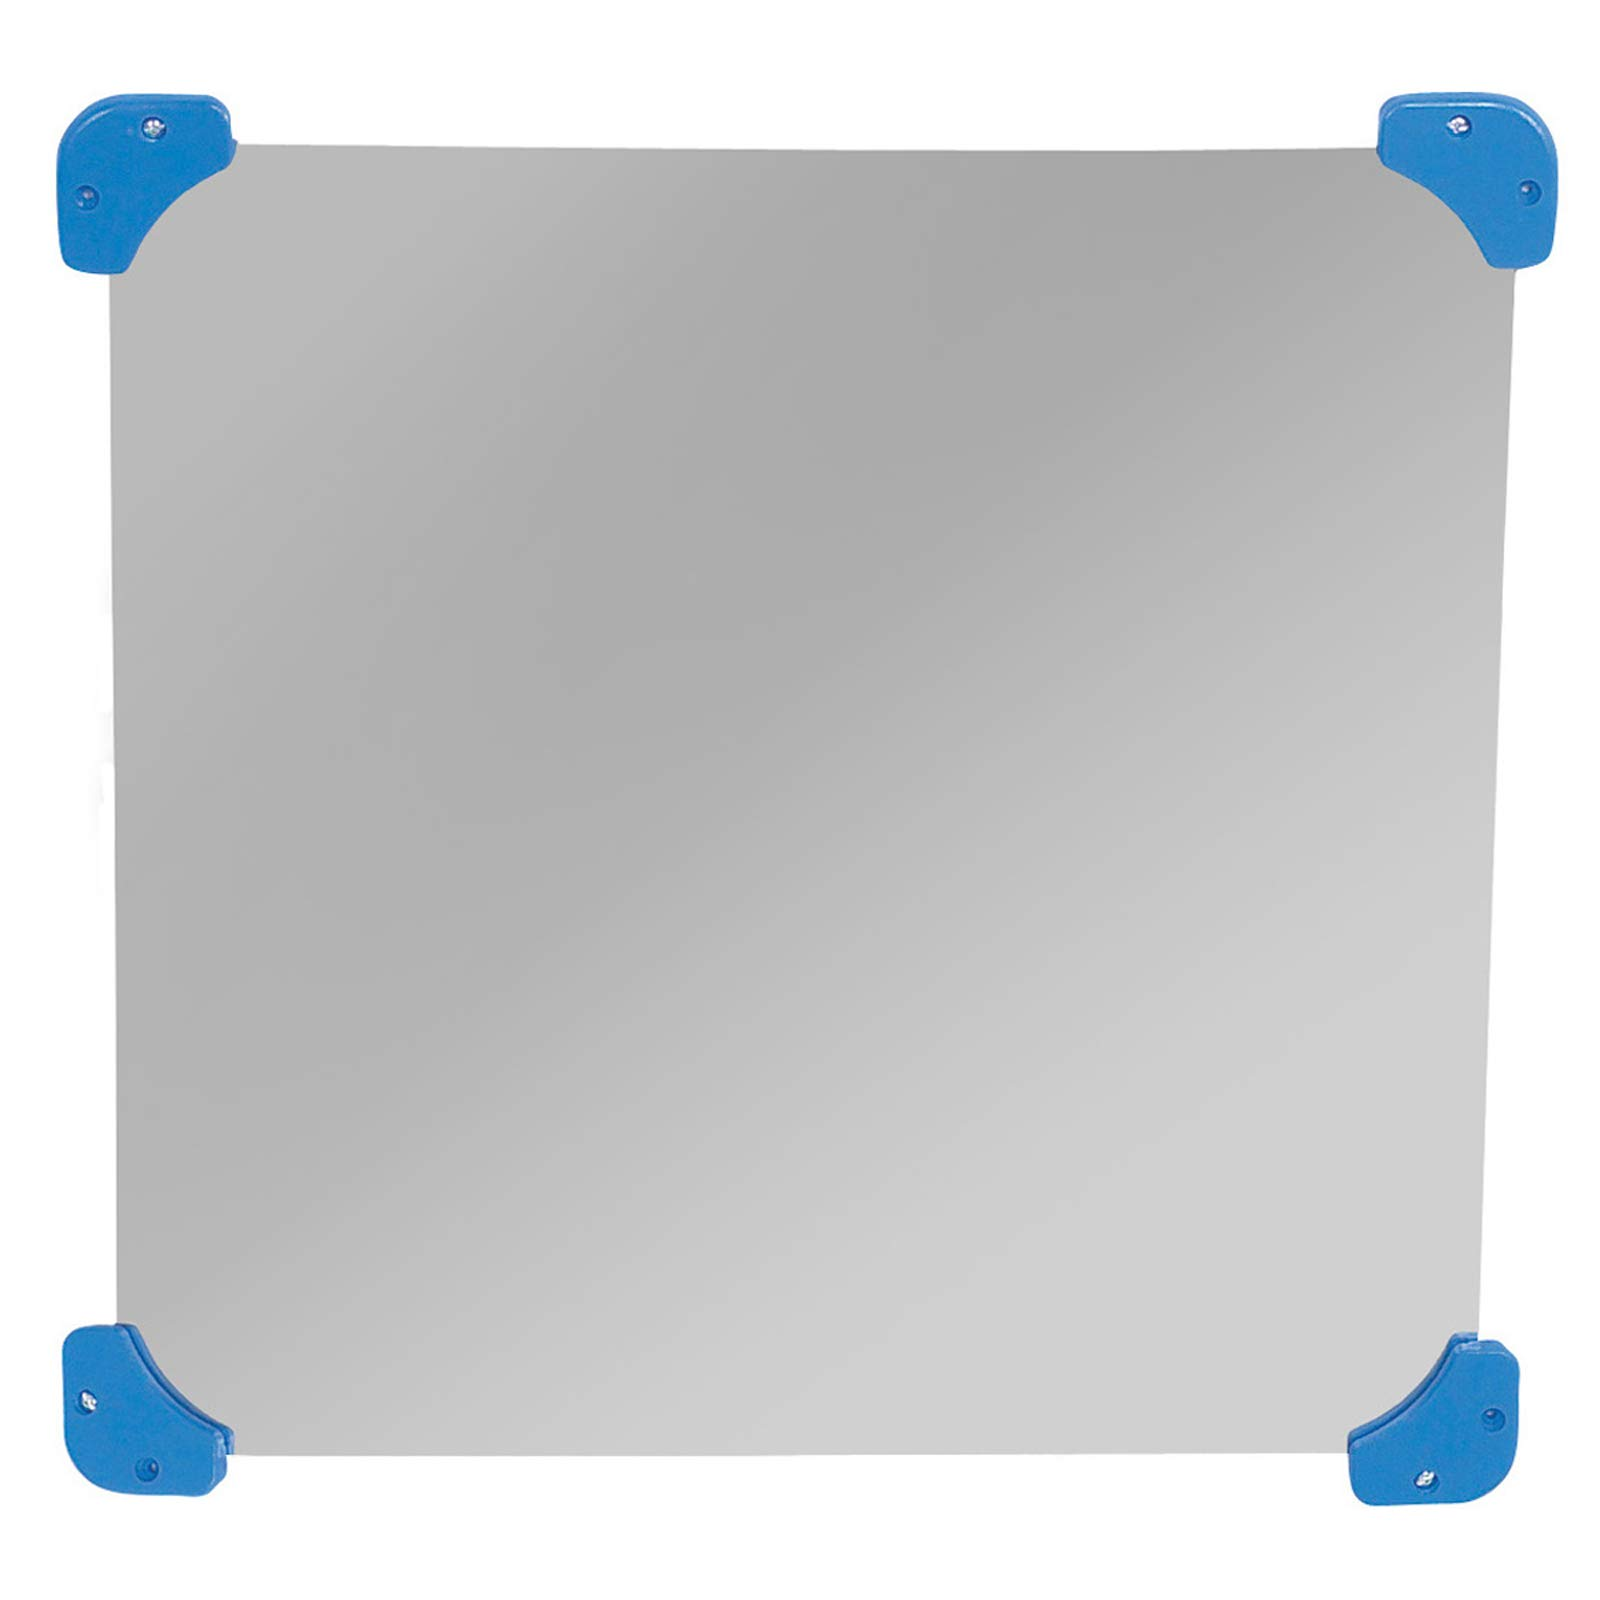 Children's Factory CF-332131-A1 Square Mirror, Primary, 24'' Width, 24'' Length by Children's Factory